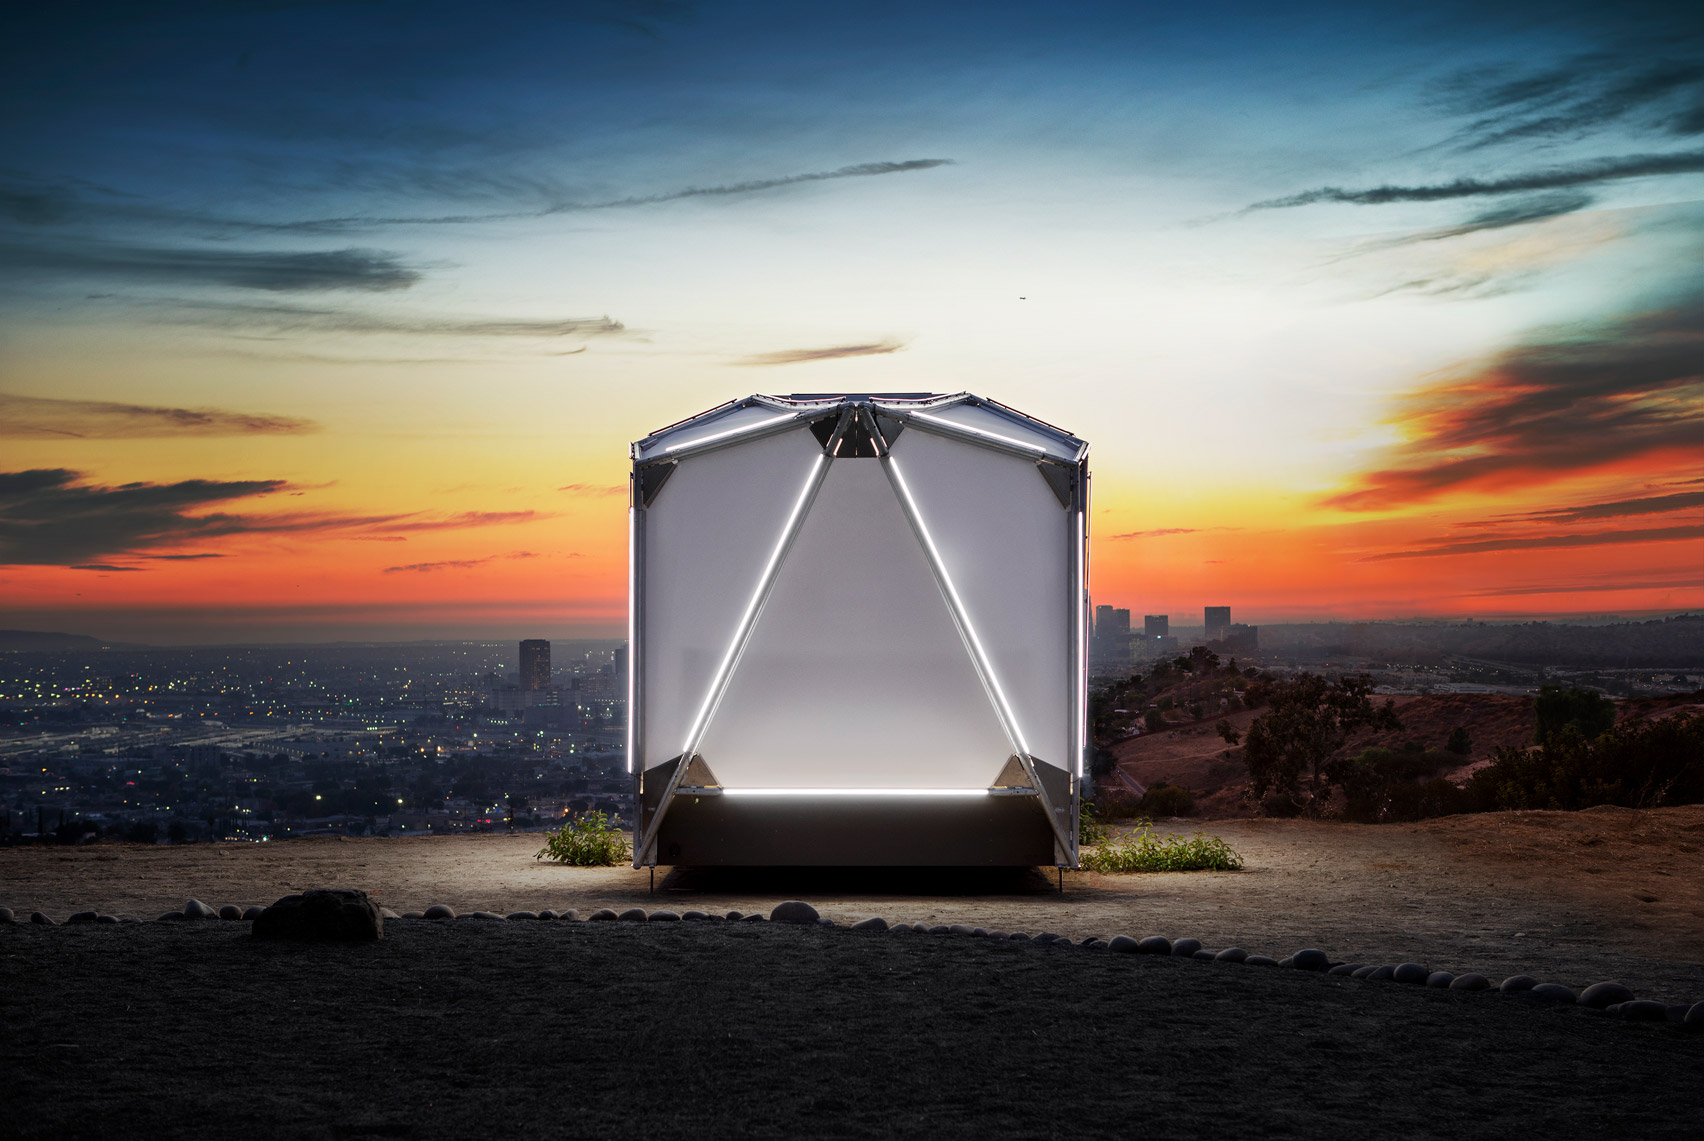 Night view of Jupe prefabricated camping shelter